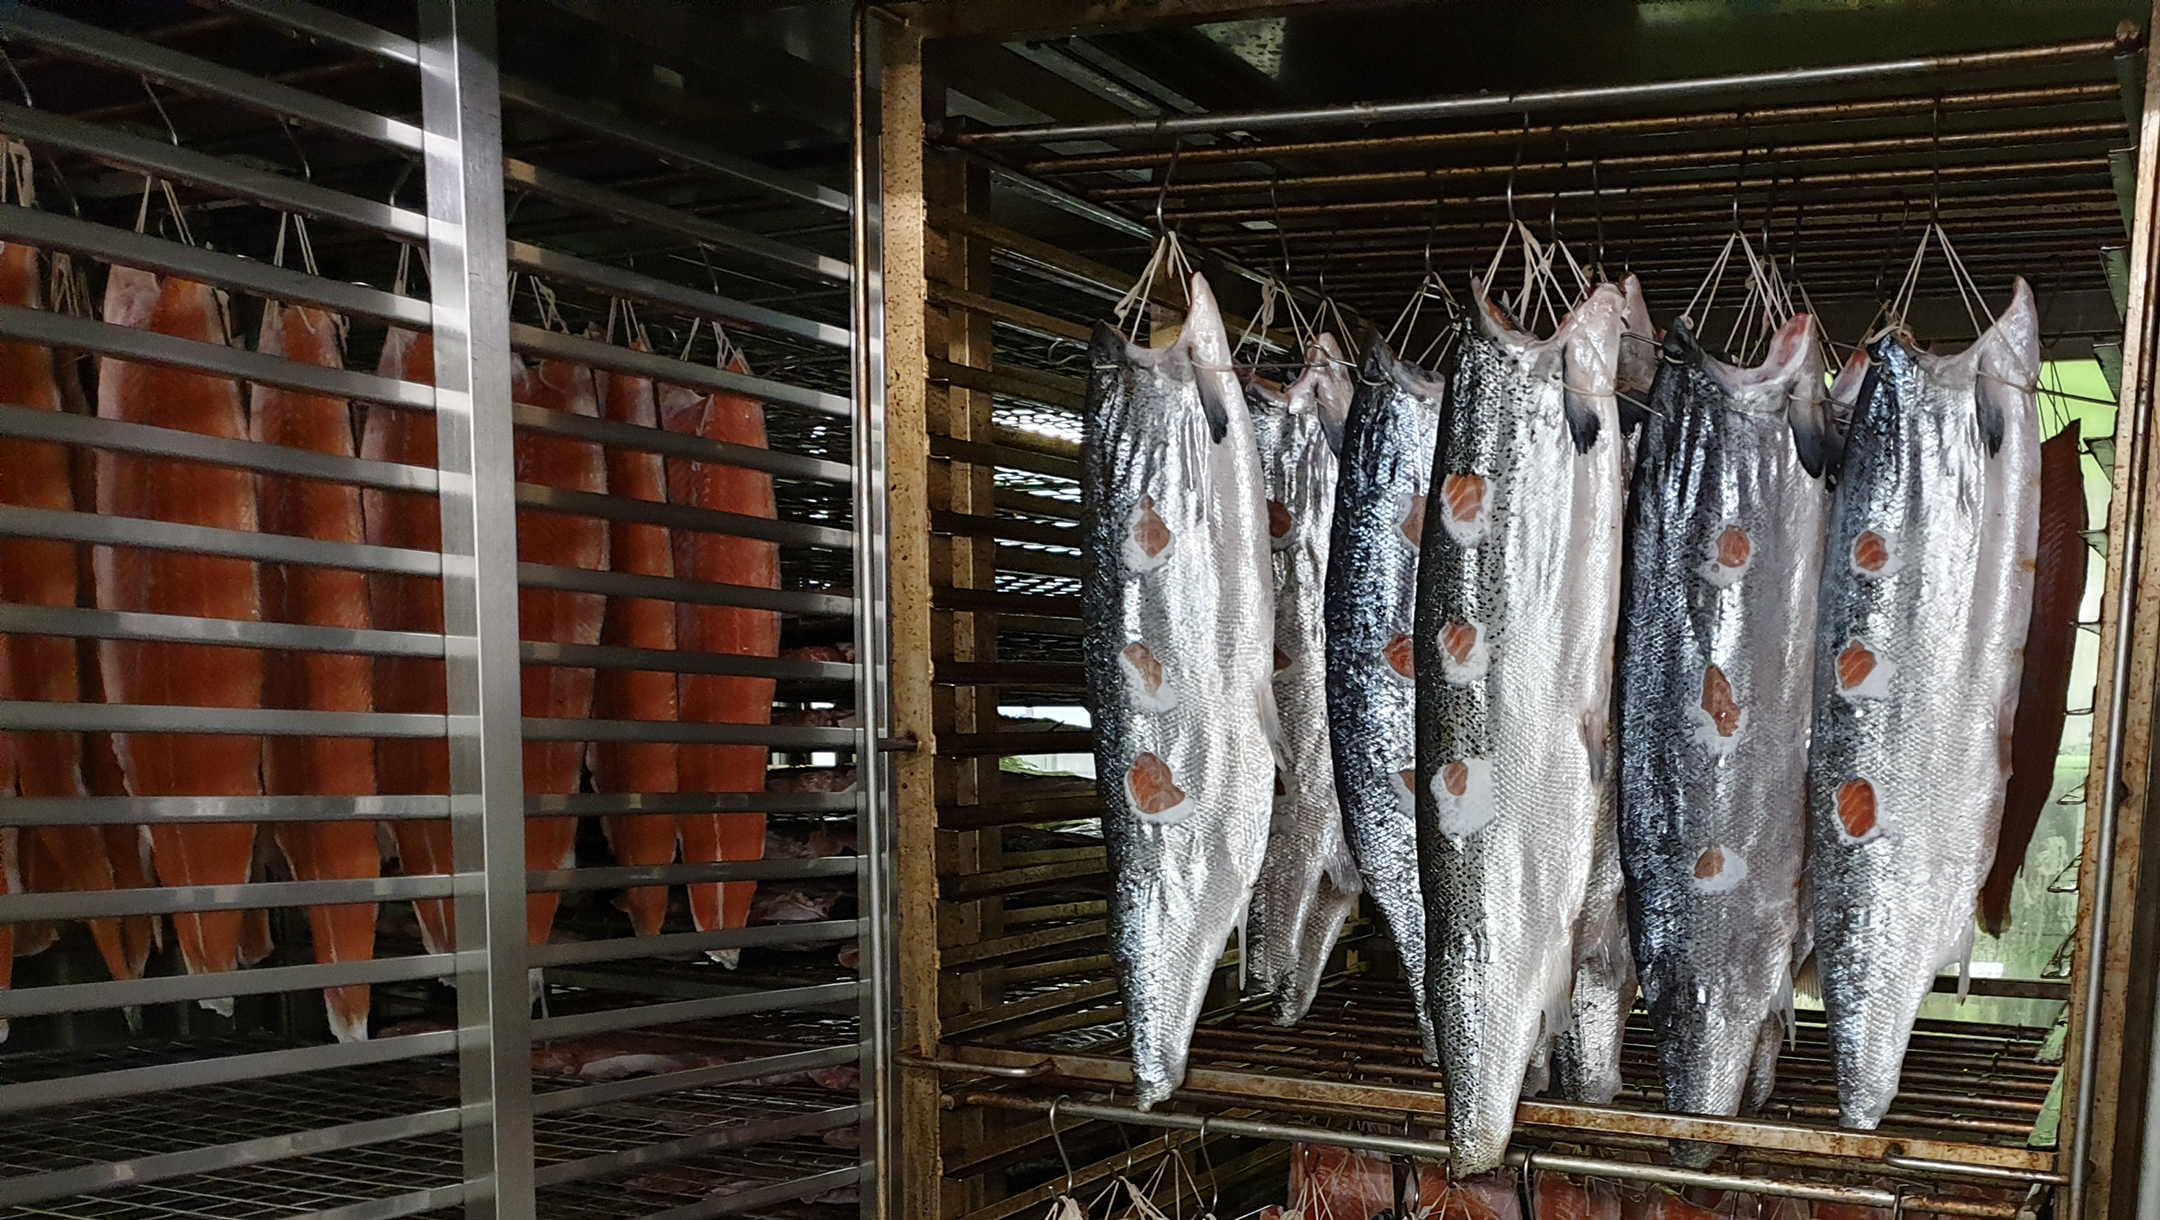 Salmon fillets being dried in a kiln ahead of smoking at Lance Forman's H. Forman & Son fish factory in the East End of London, the United Kingdom on Sept. 4, 2019 (Cnaan Liphshiz)